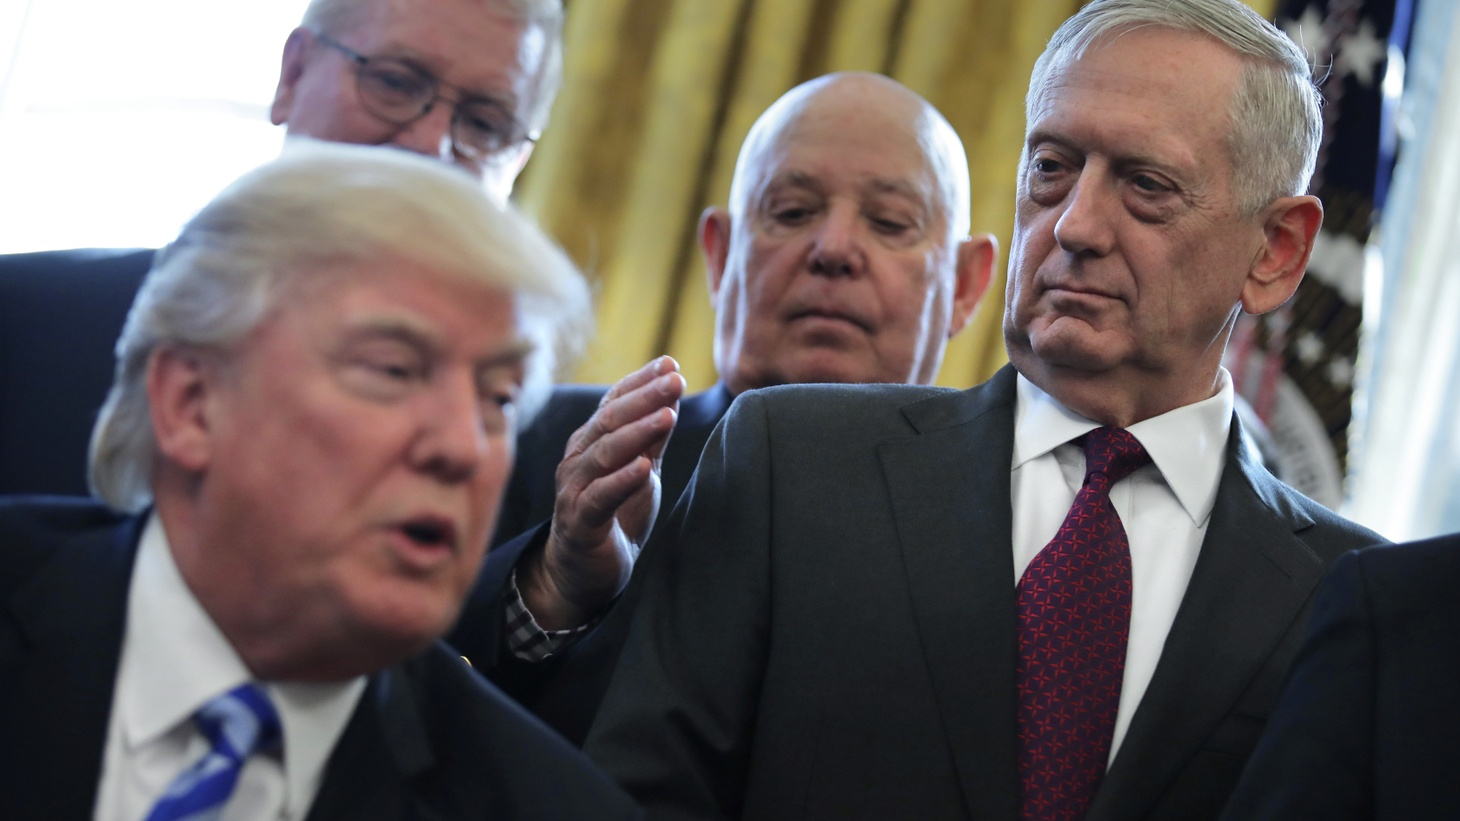 Defense Secretary James Mattis looks at President Donald Trump as he speaks during a meeting with Medal of Honor recipients in the Oval Office of the White House in Washington, March 24, 2017.